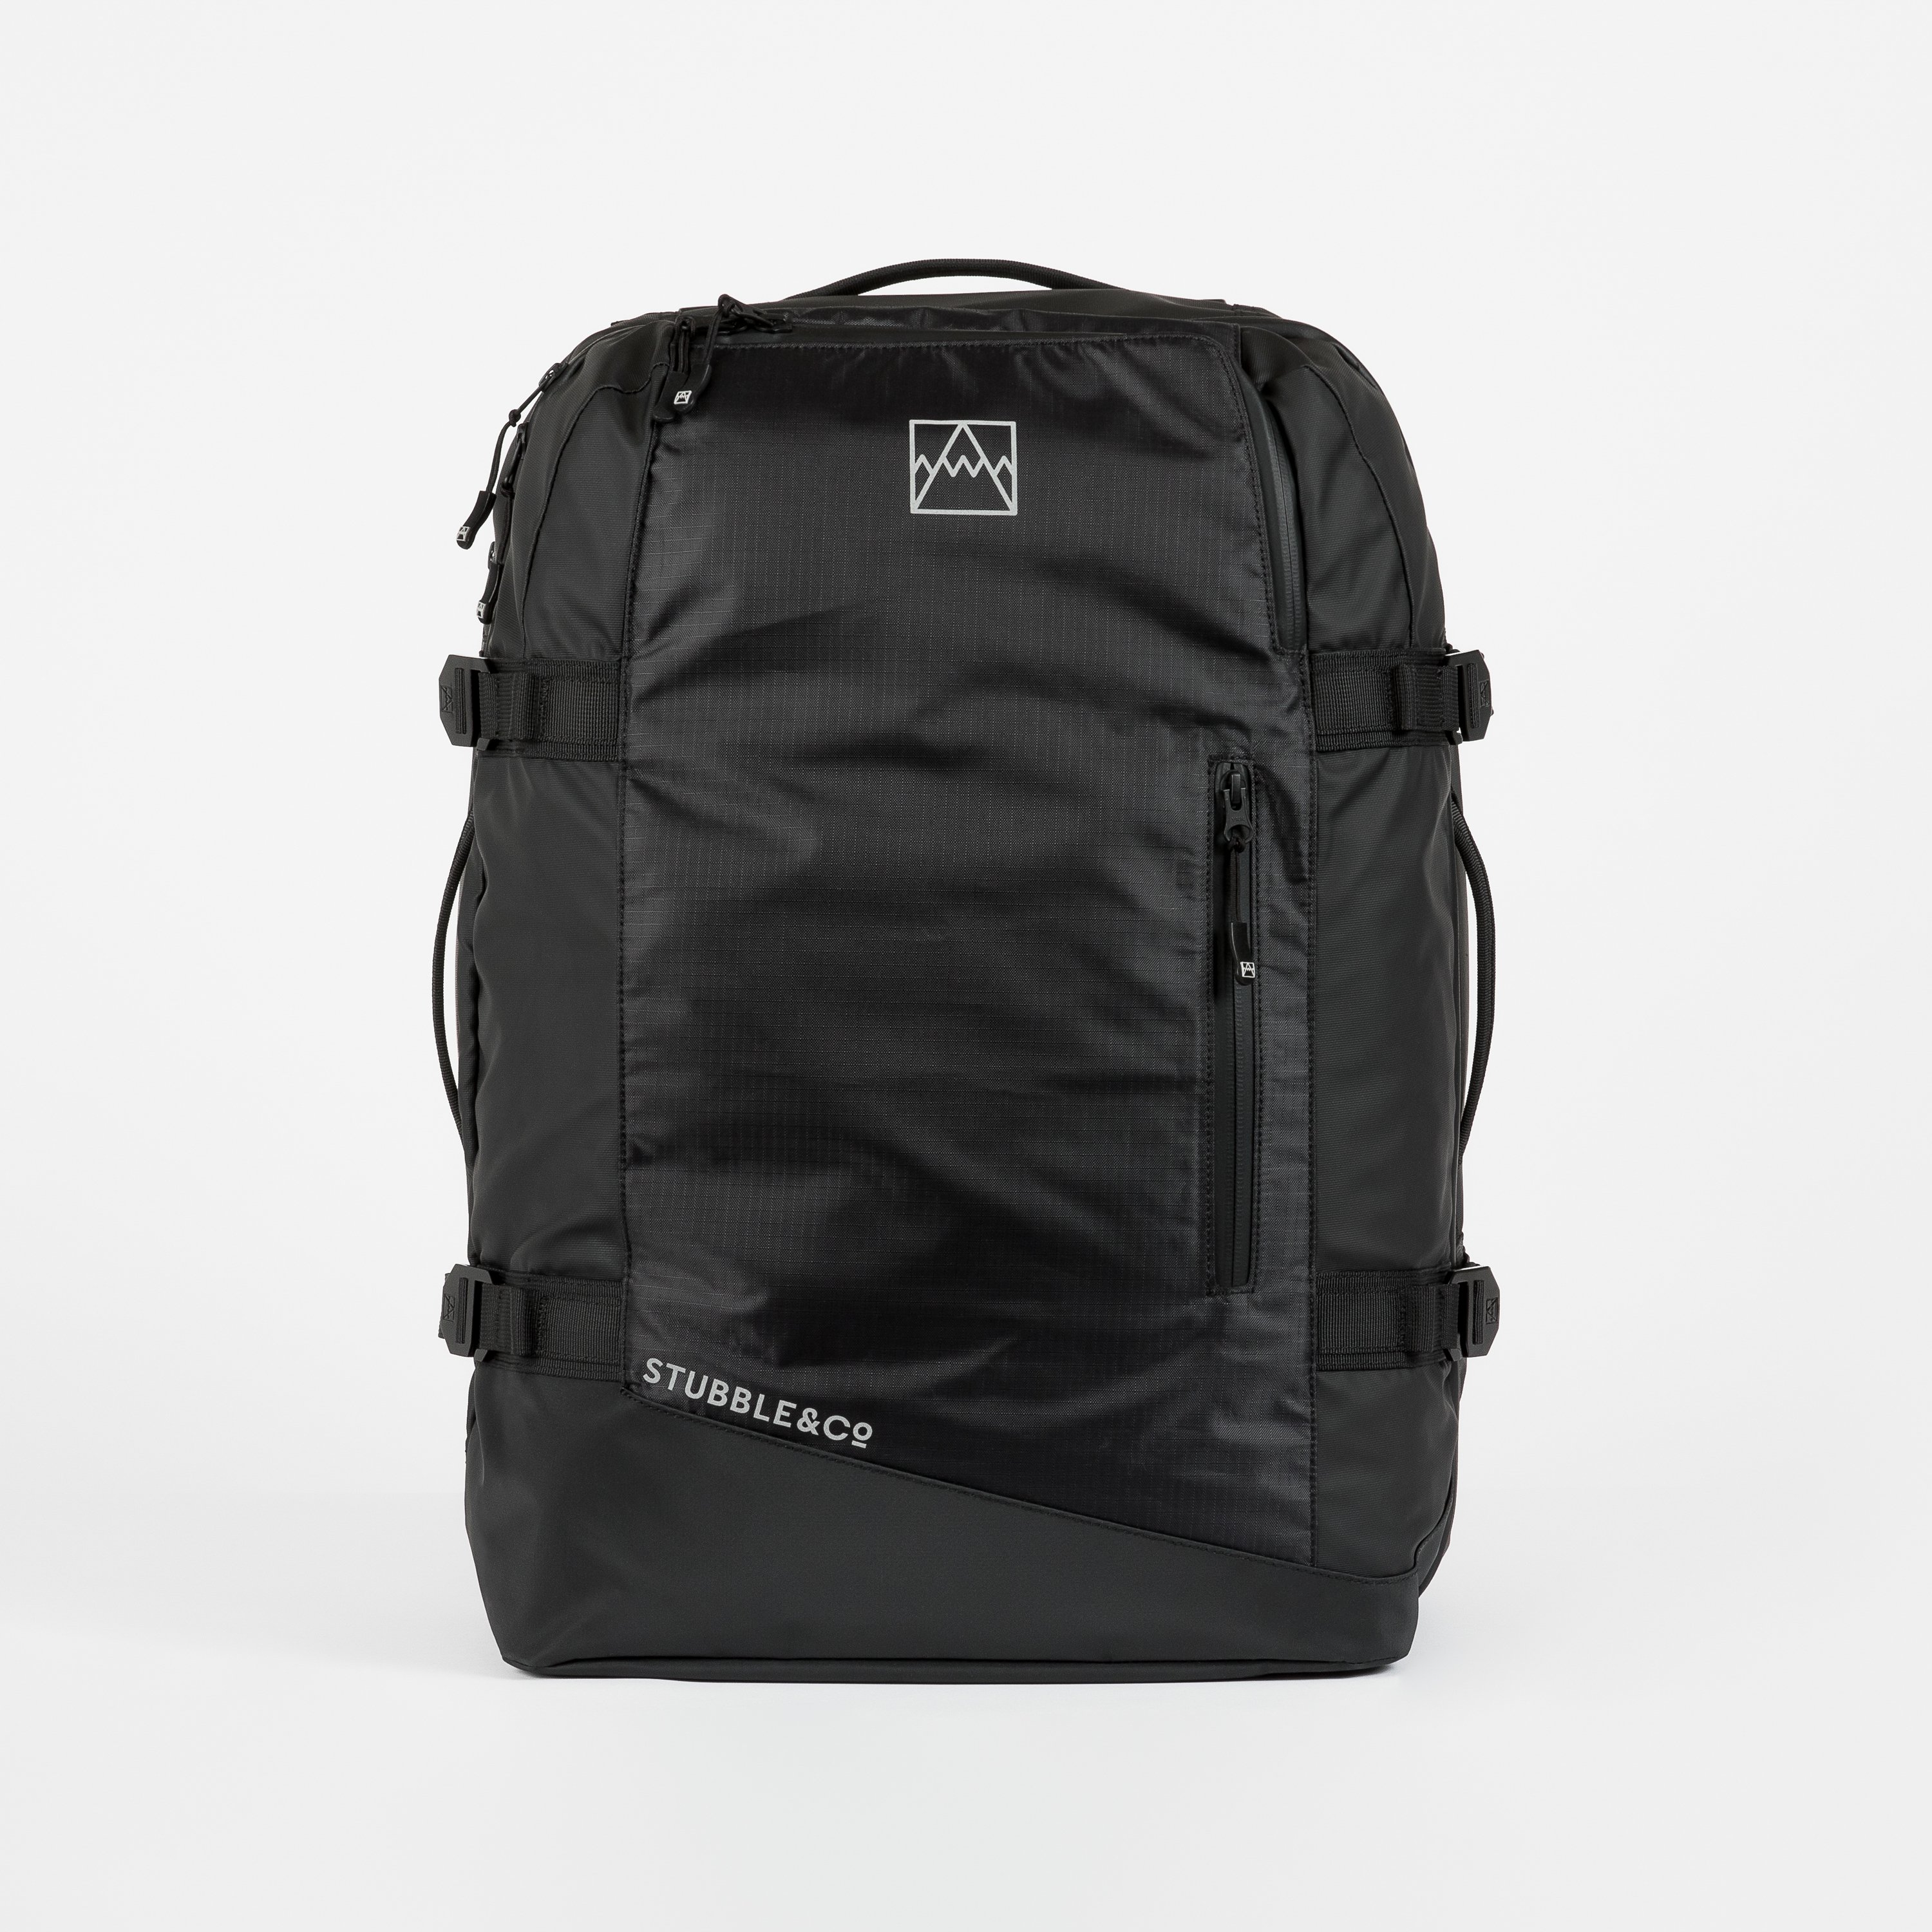 The Adventure Bag - made from recycled plastic